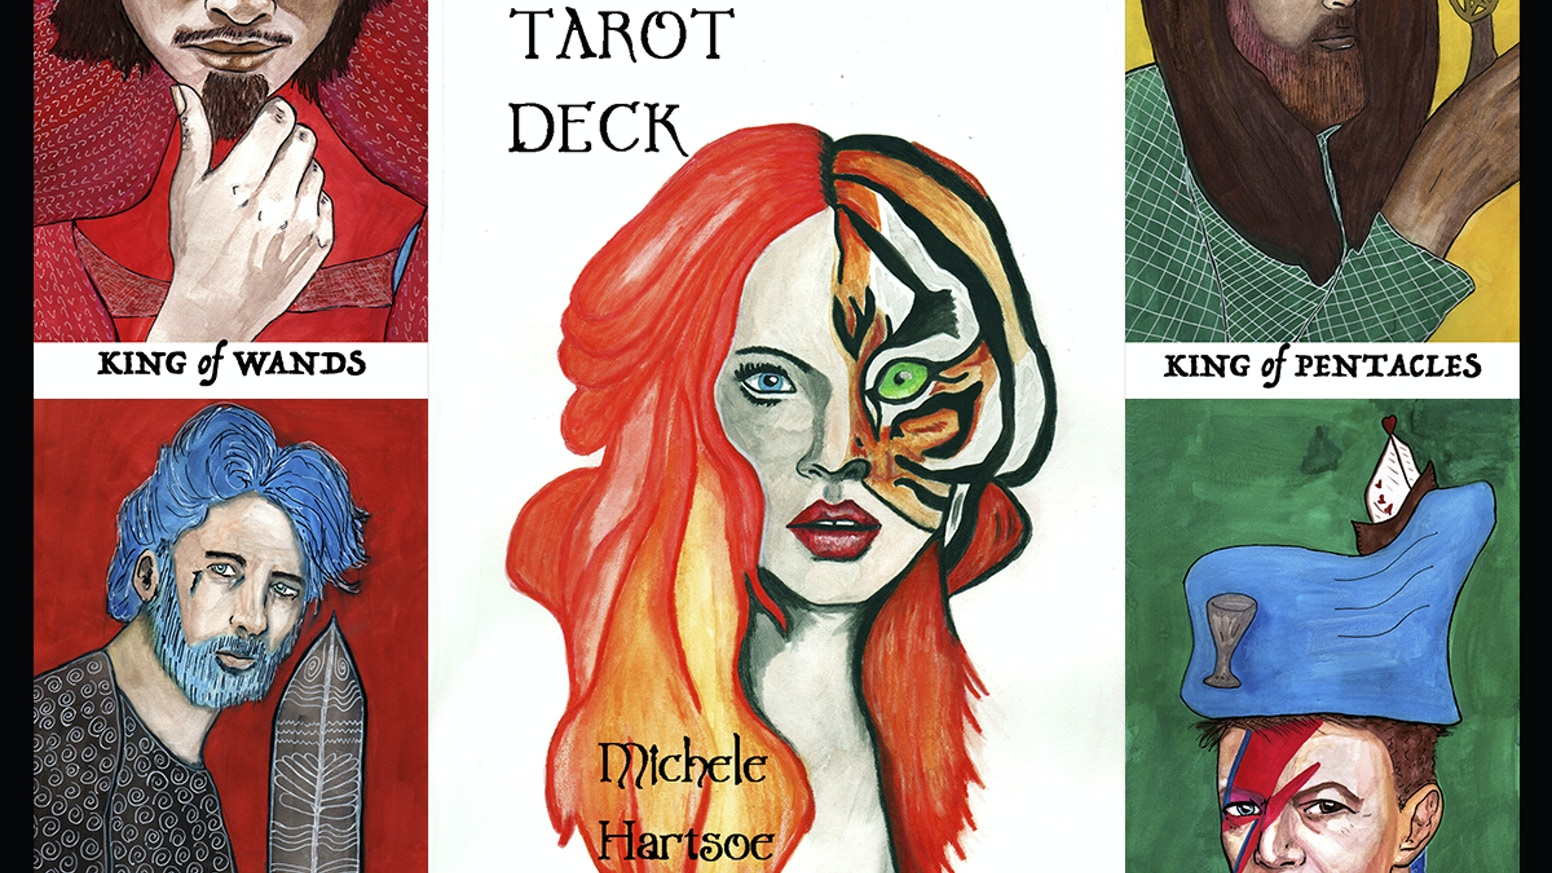 A Character Driven Illustrated Tarot Deck with all original watercolor paintings from Michele Grey Hartsoe.